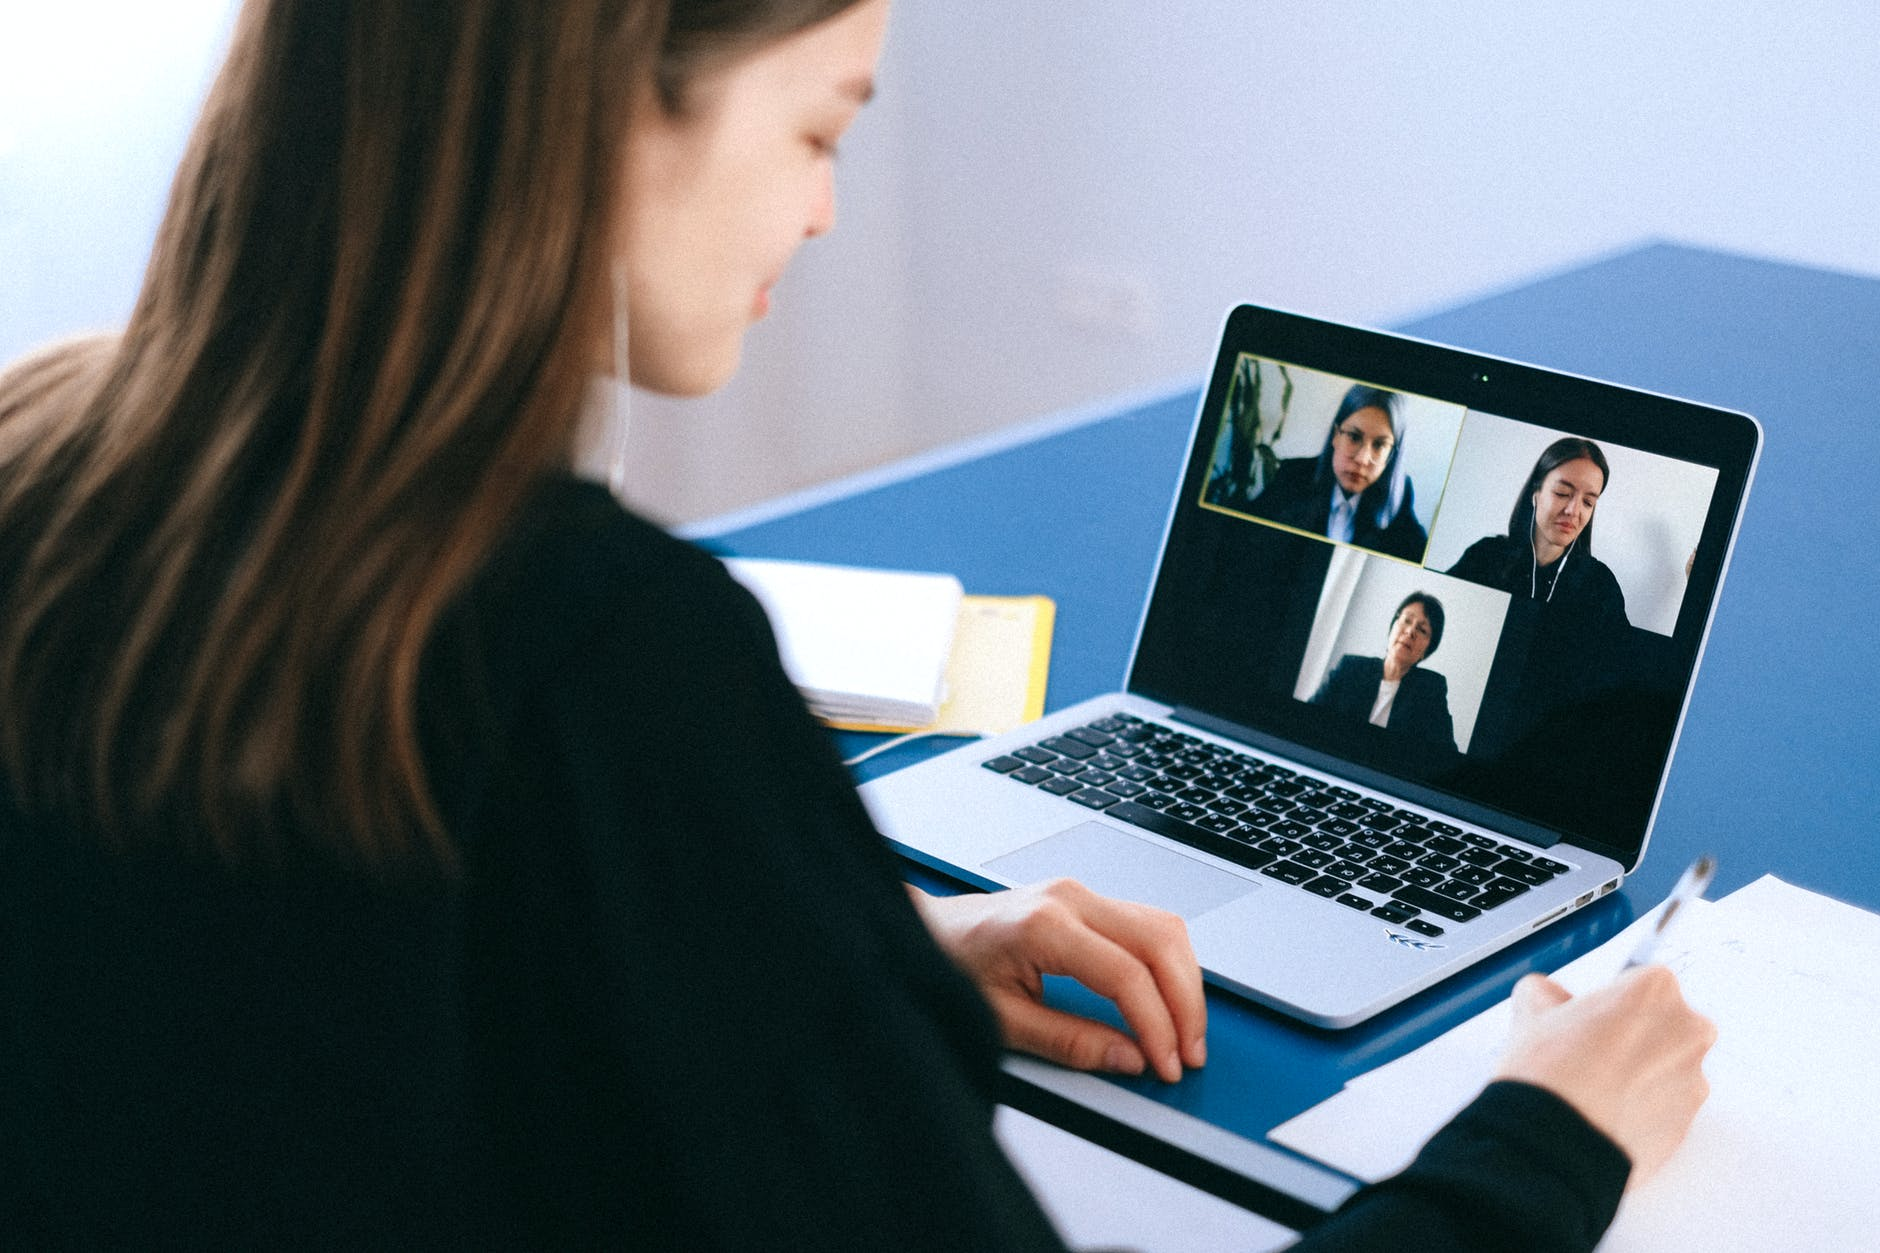 BE PREPARED FOR YOUR NEXT VIDEO INTERVIEW